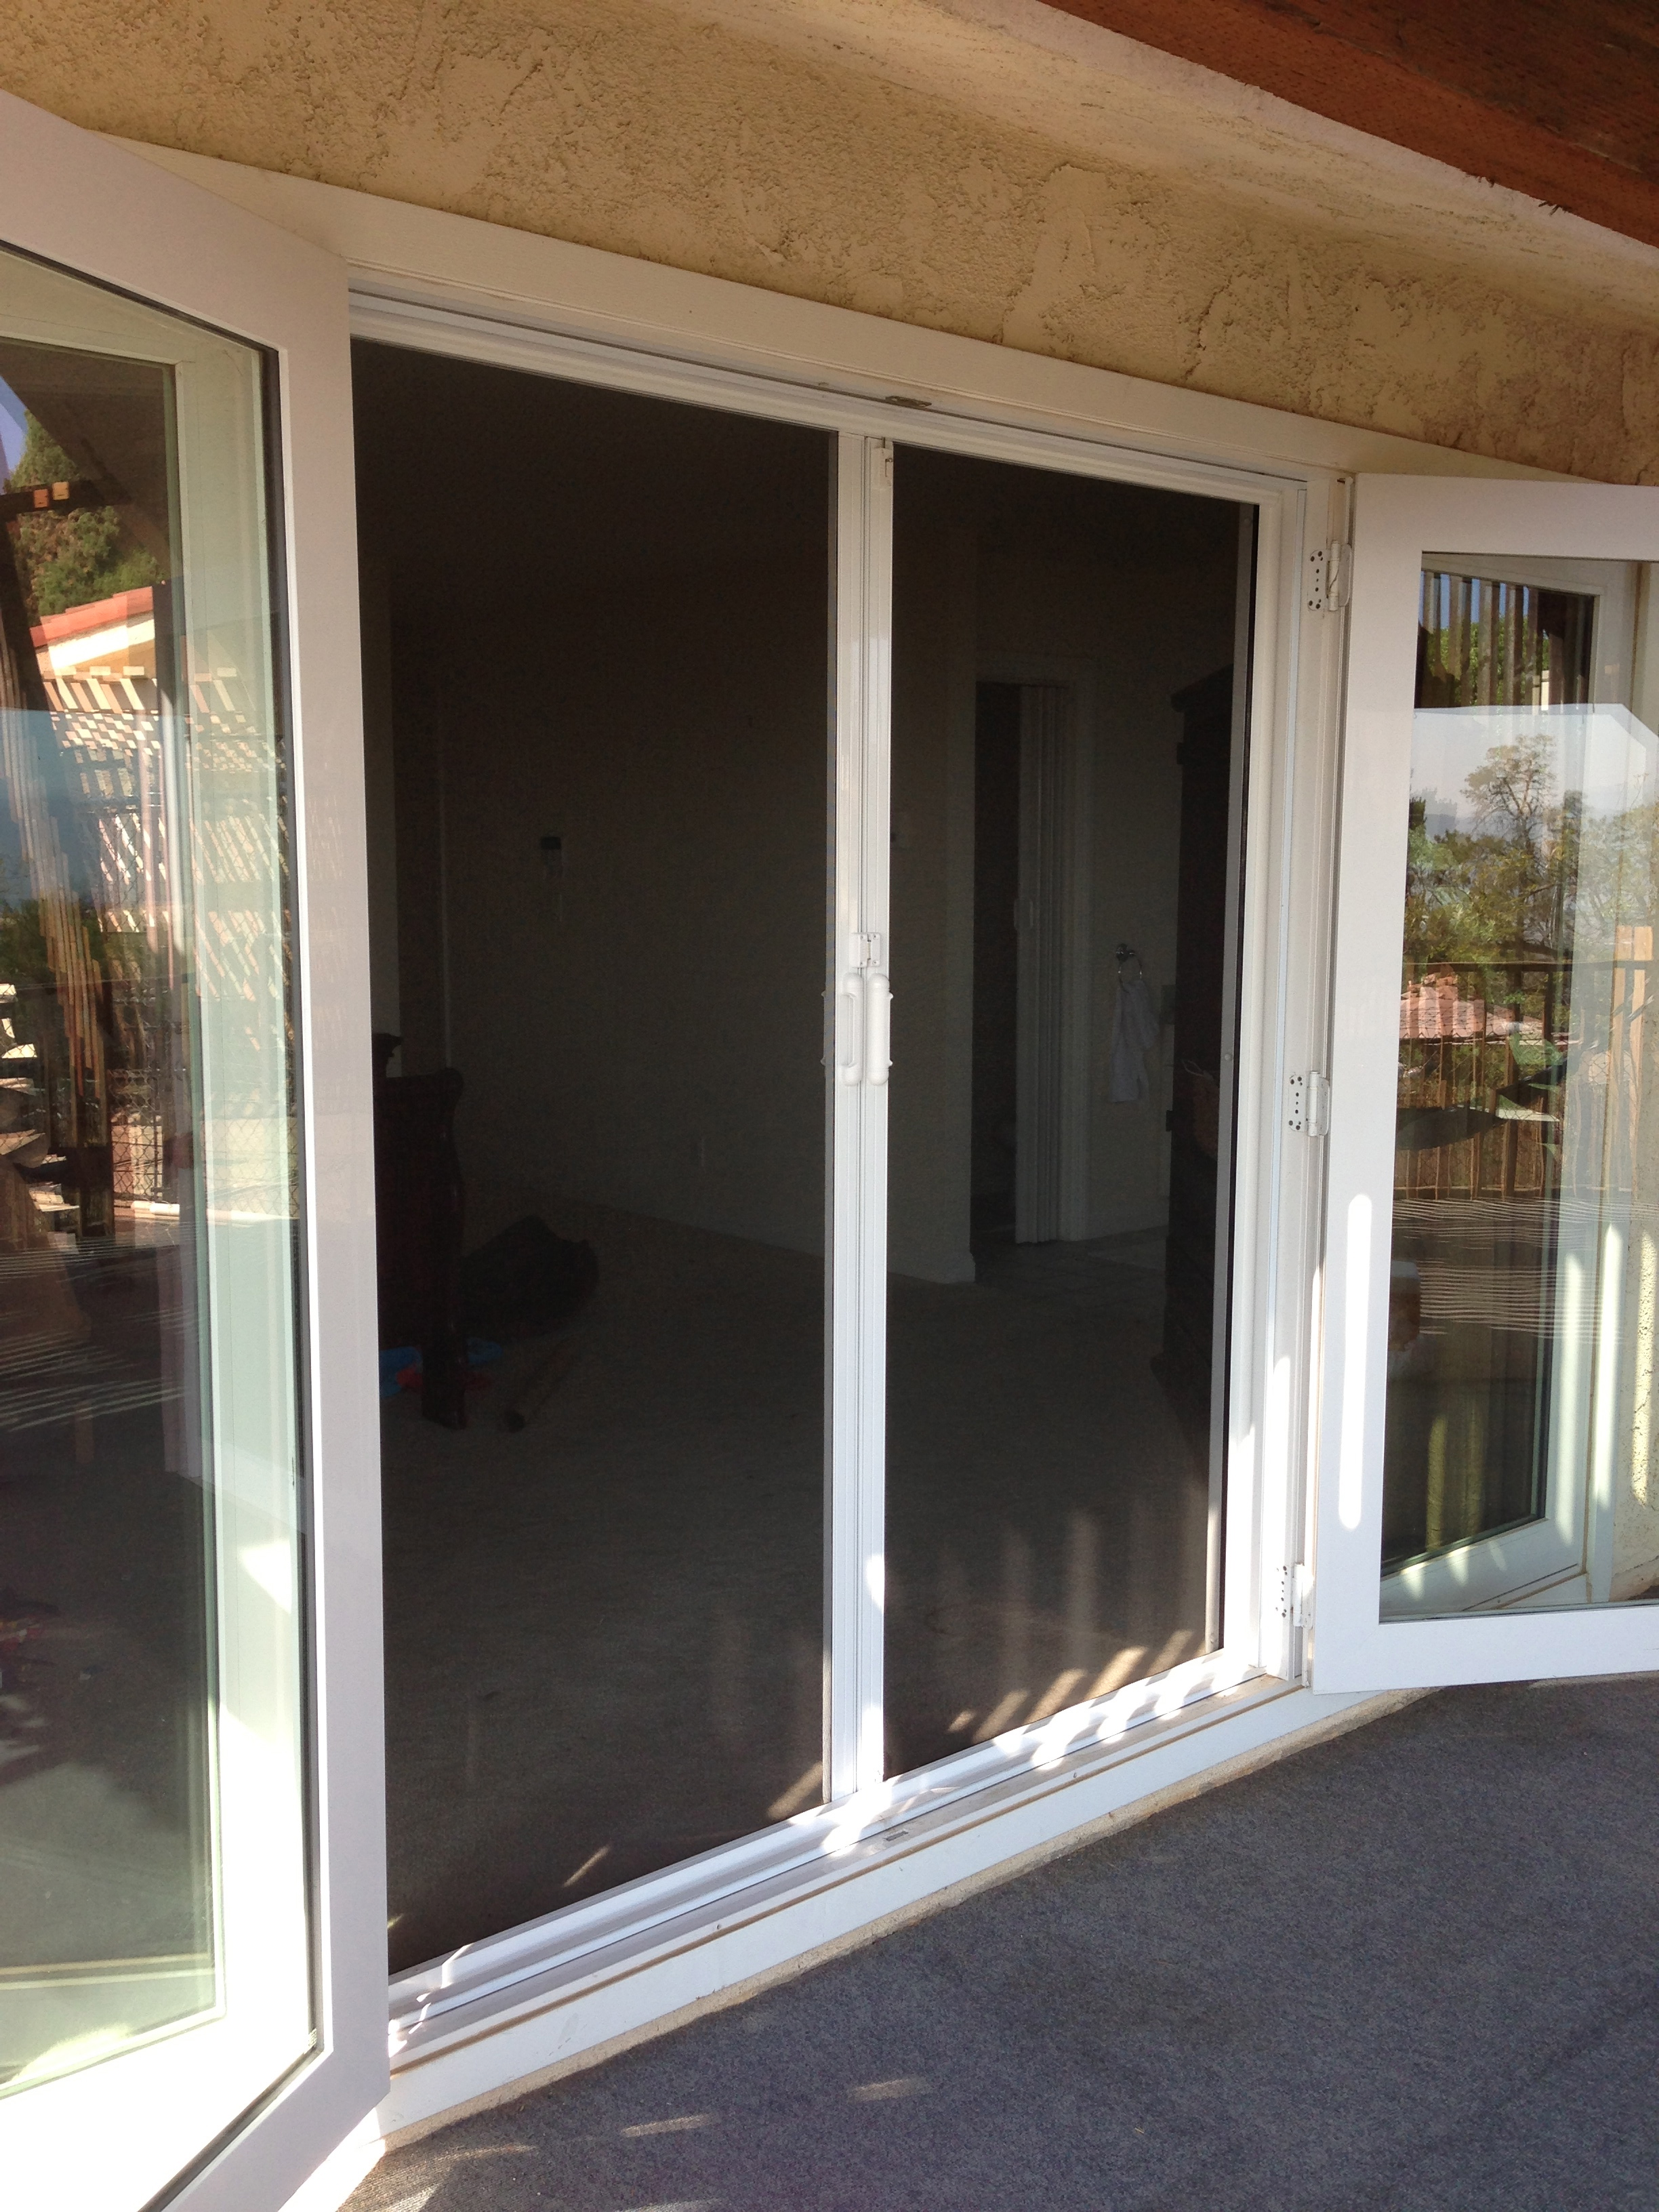 Retractable screen doors screen door and window screen for Retractable screen door for double french doors